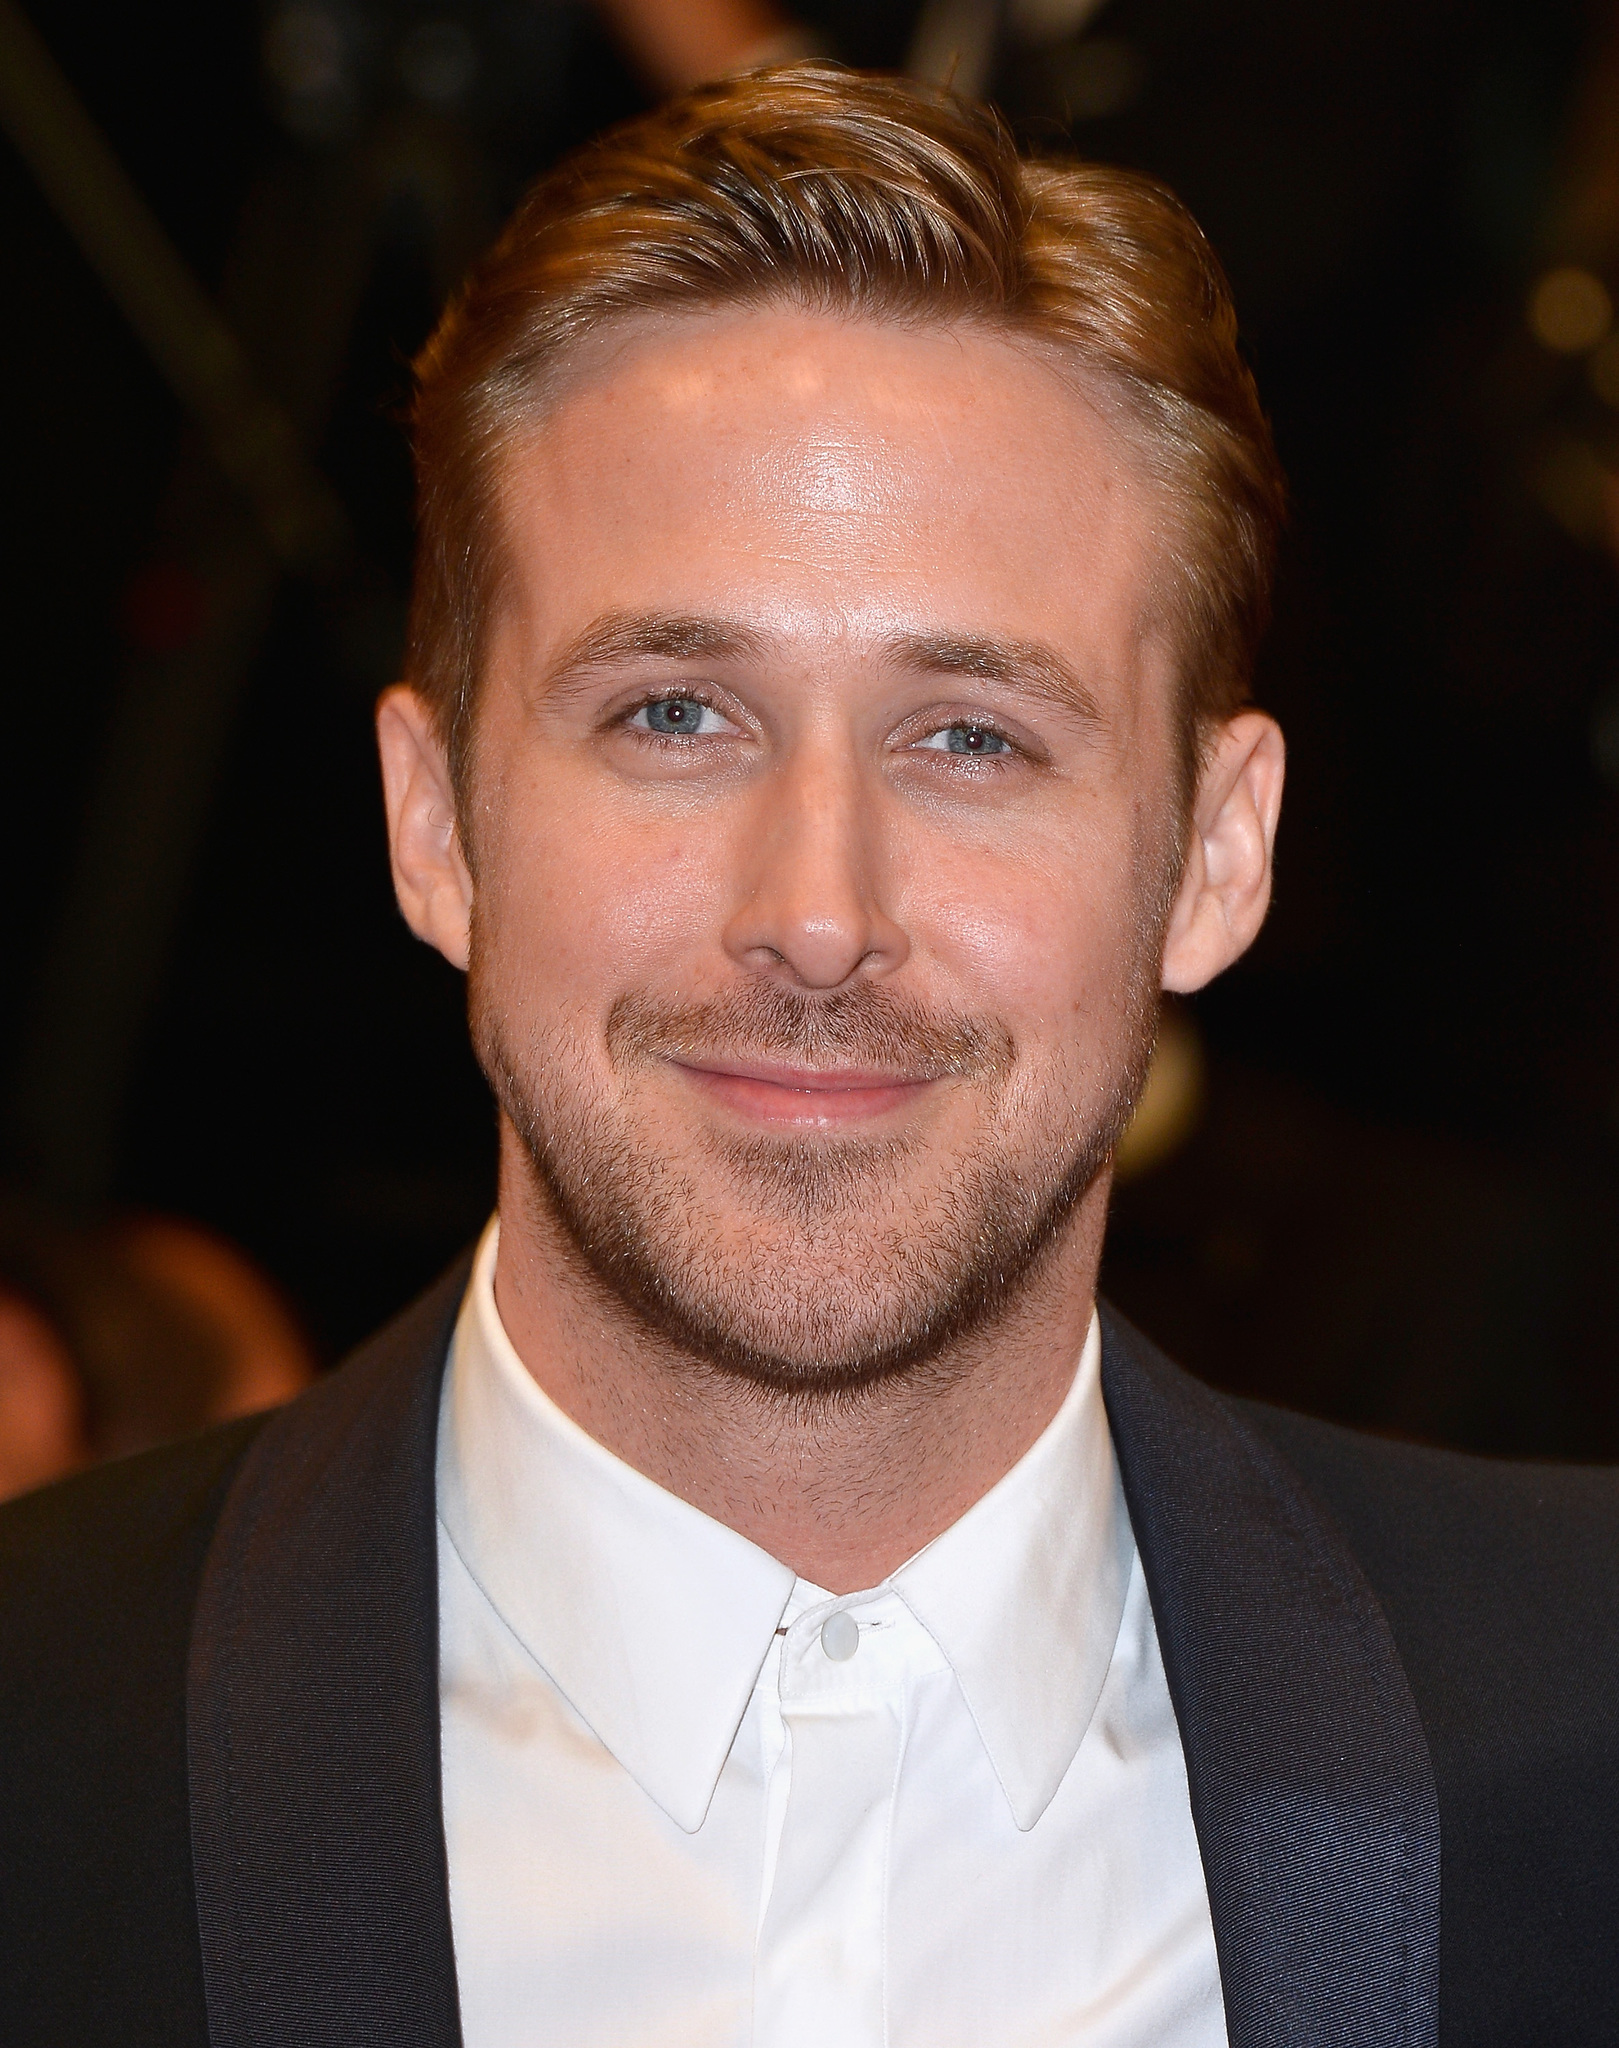 Ryan Gosling - Contact Info, Agent, Manager | IMDbPro